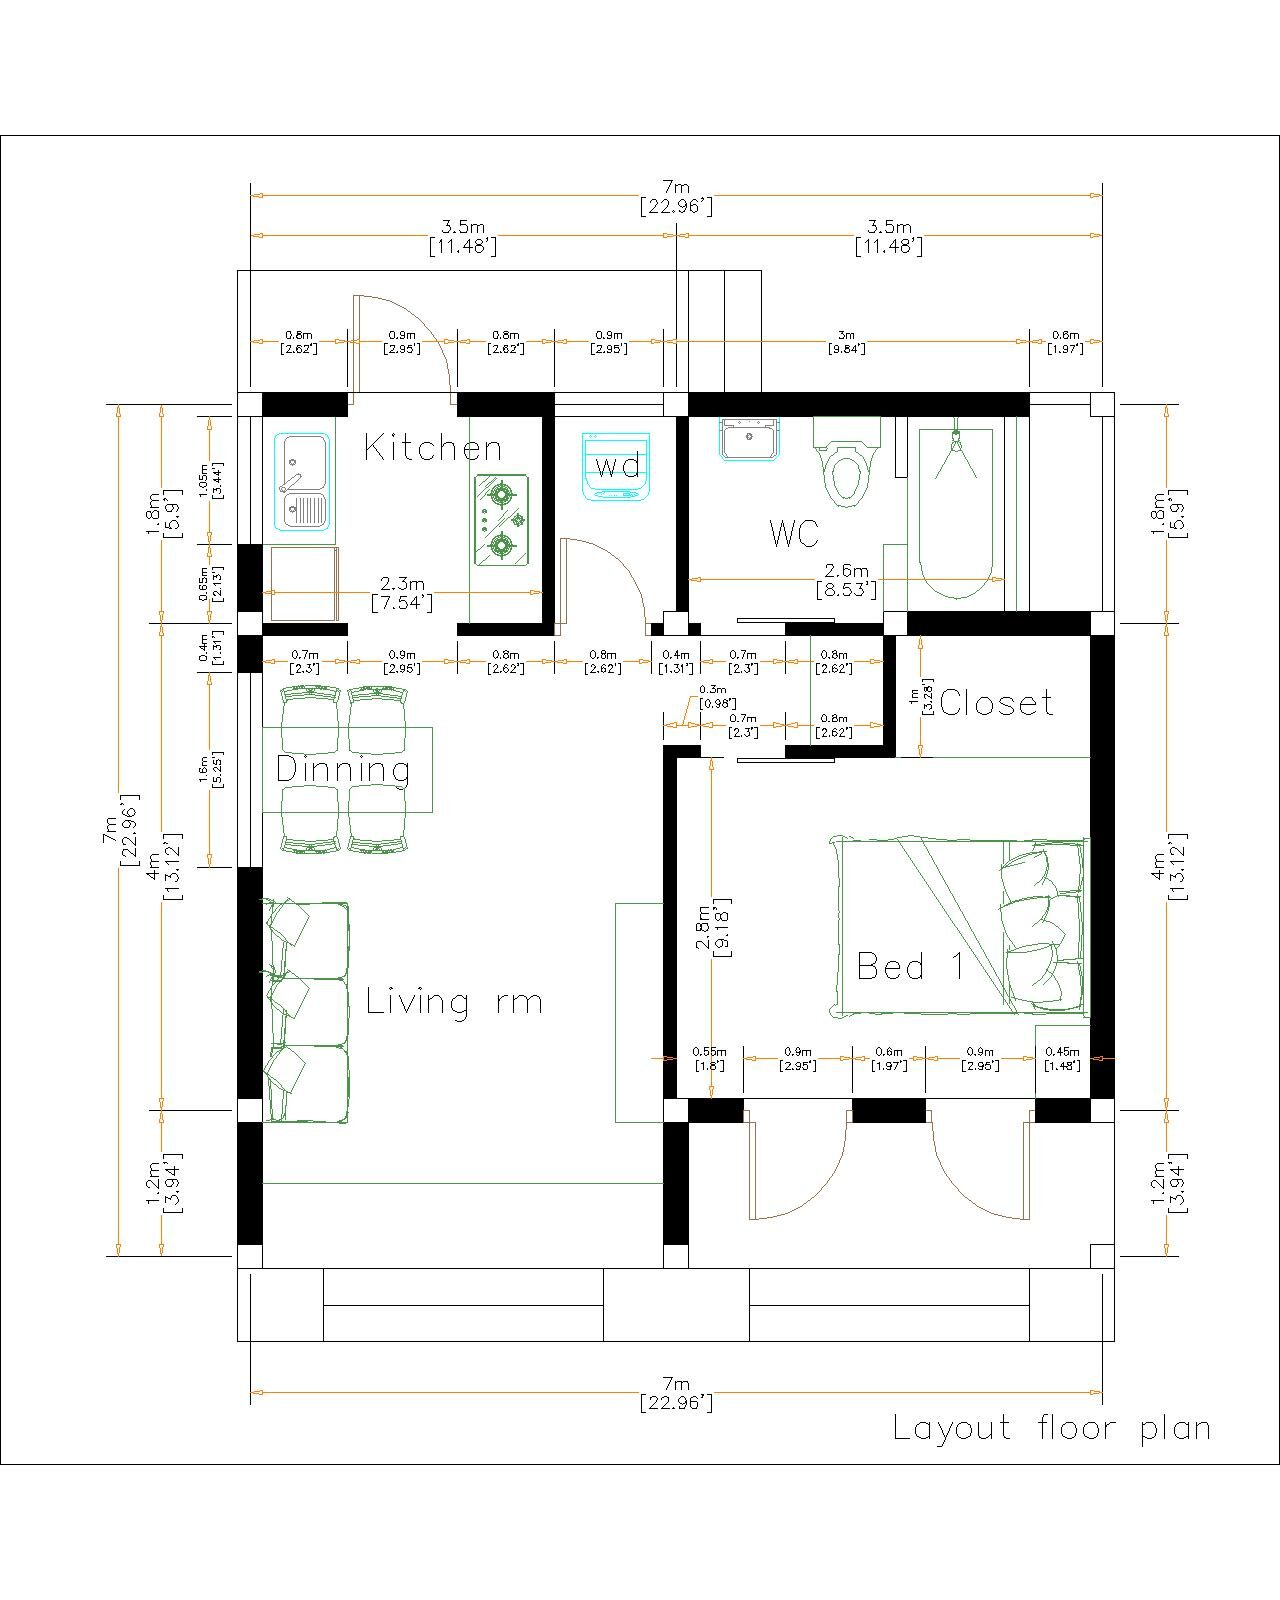 Small Cabin Plans 7x7 Meter 23x23 Feet Shed Roof layout floor plan